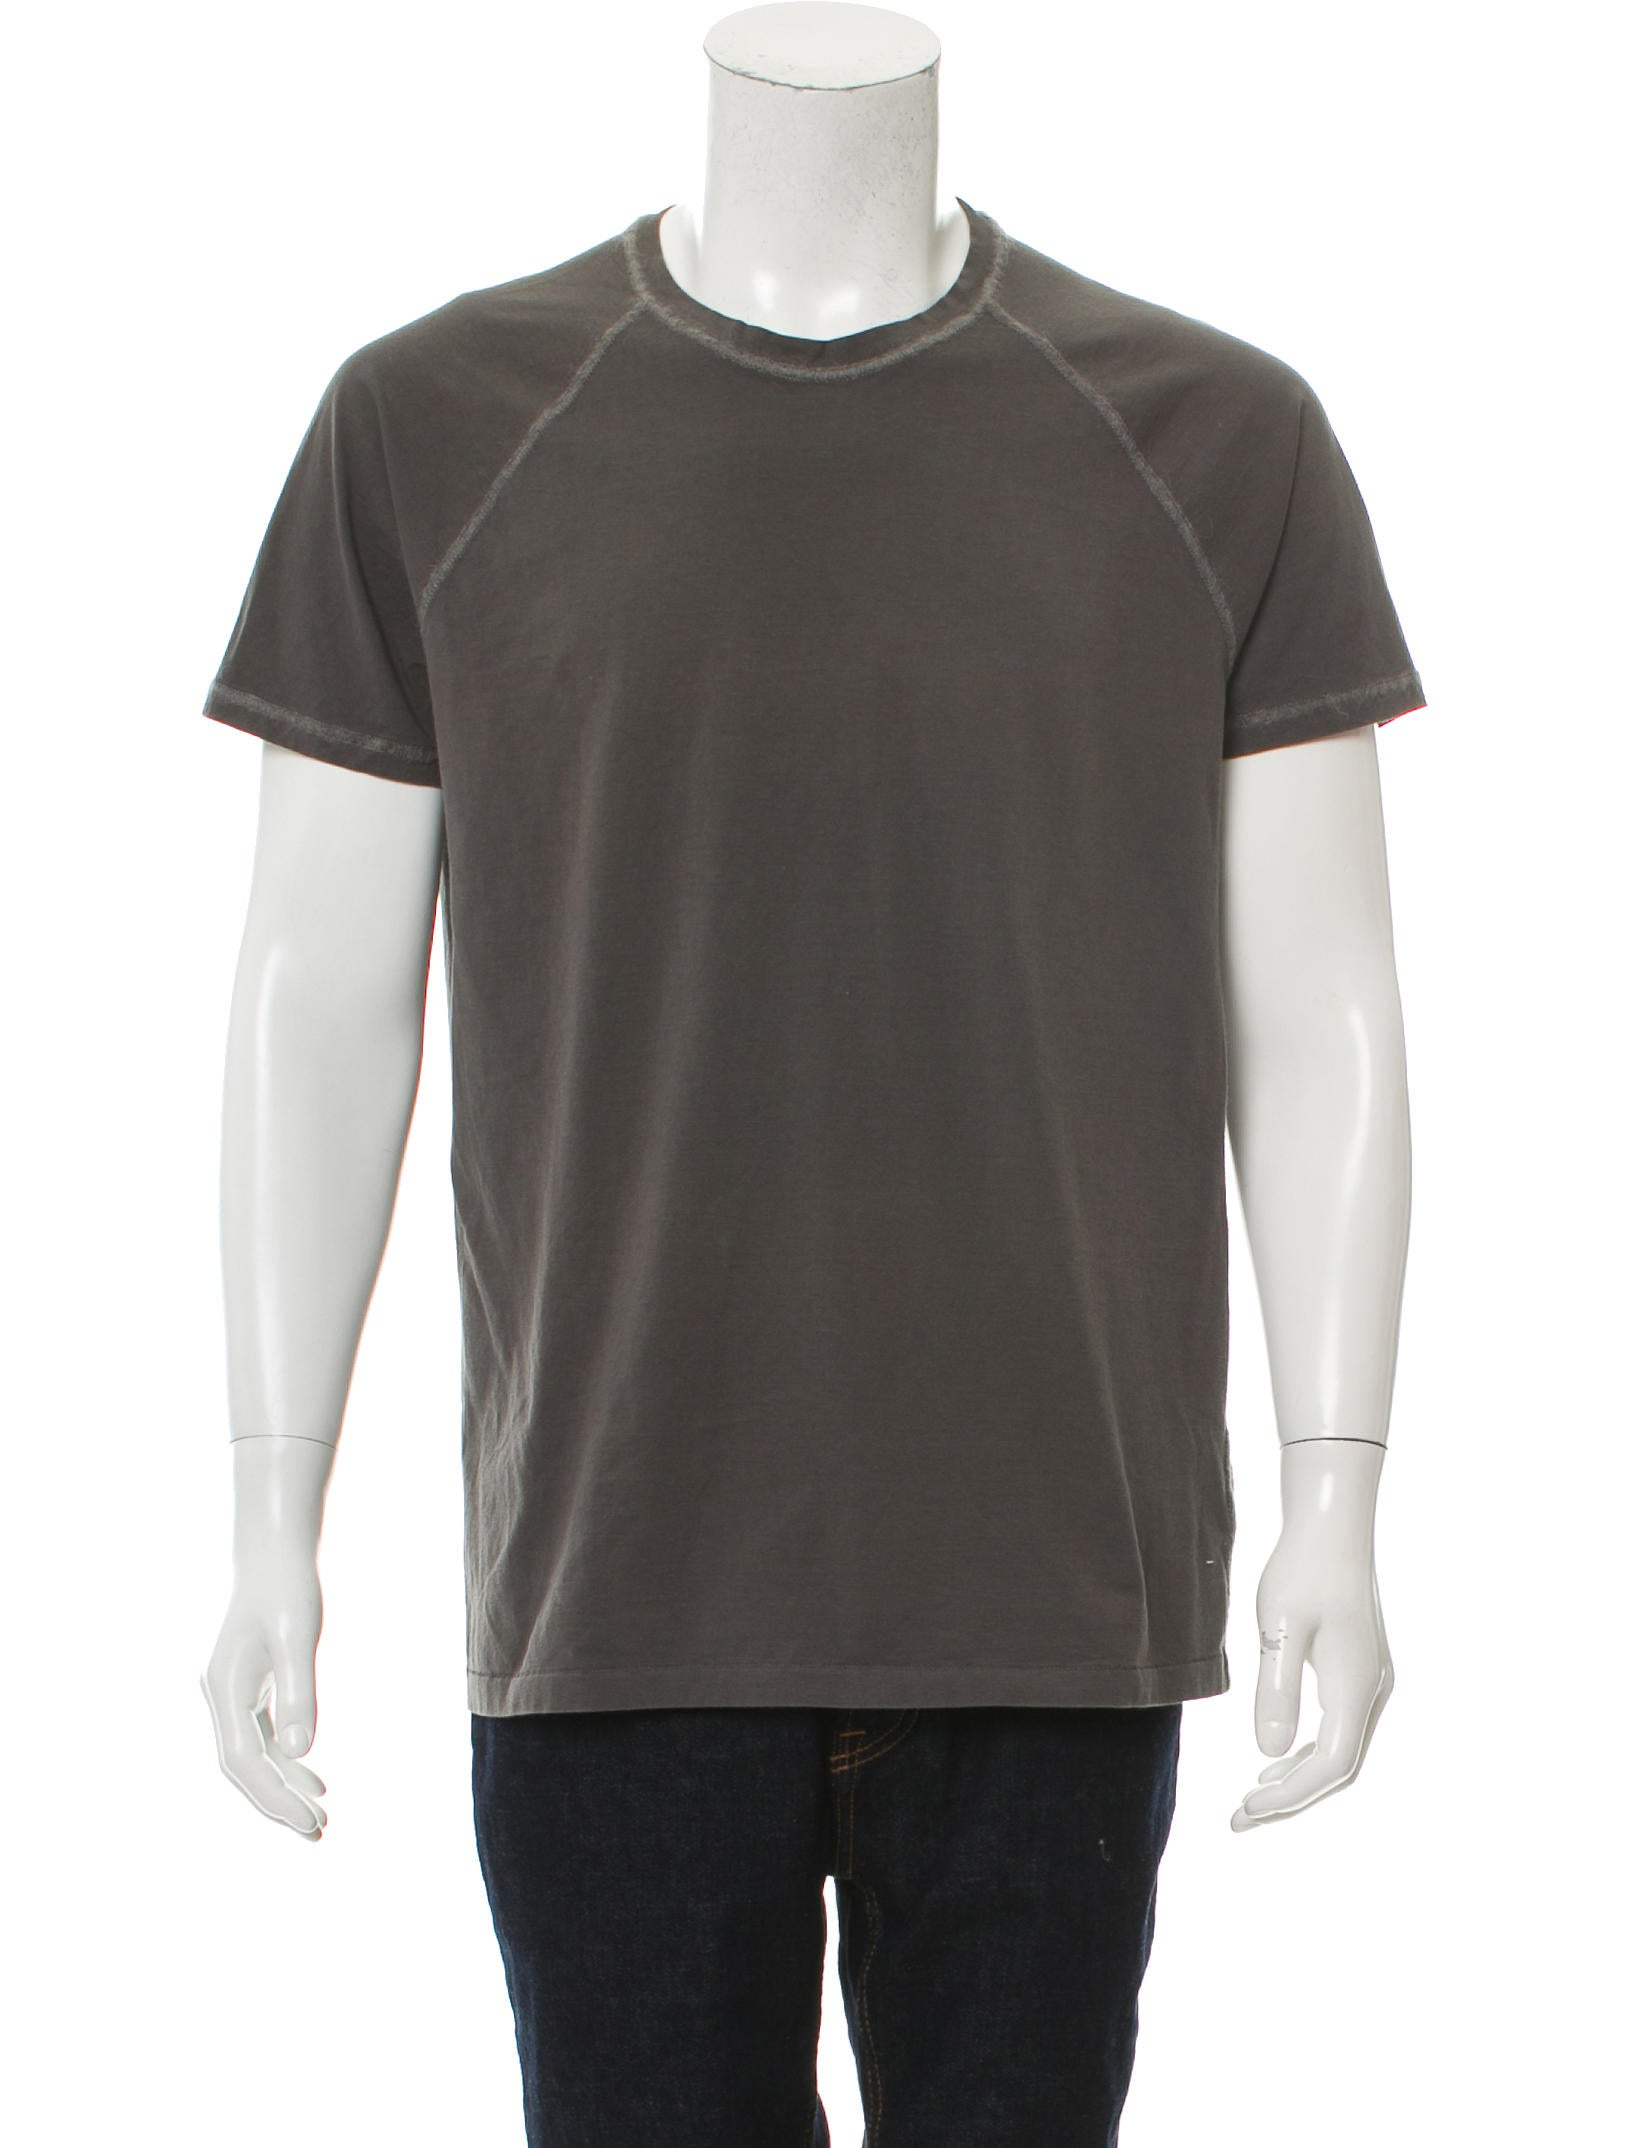 Bottega veneta scoop neck short sleeve t shirt clothing for Bottega veneta t shirt